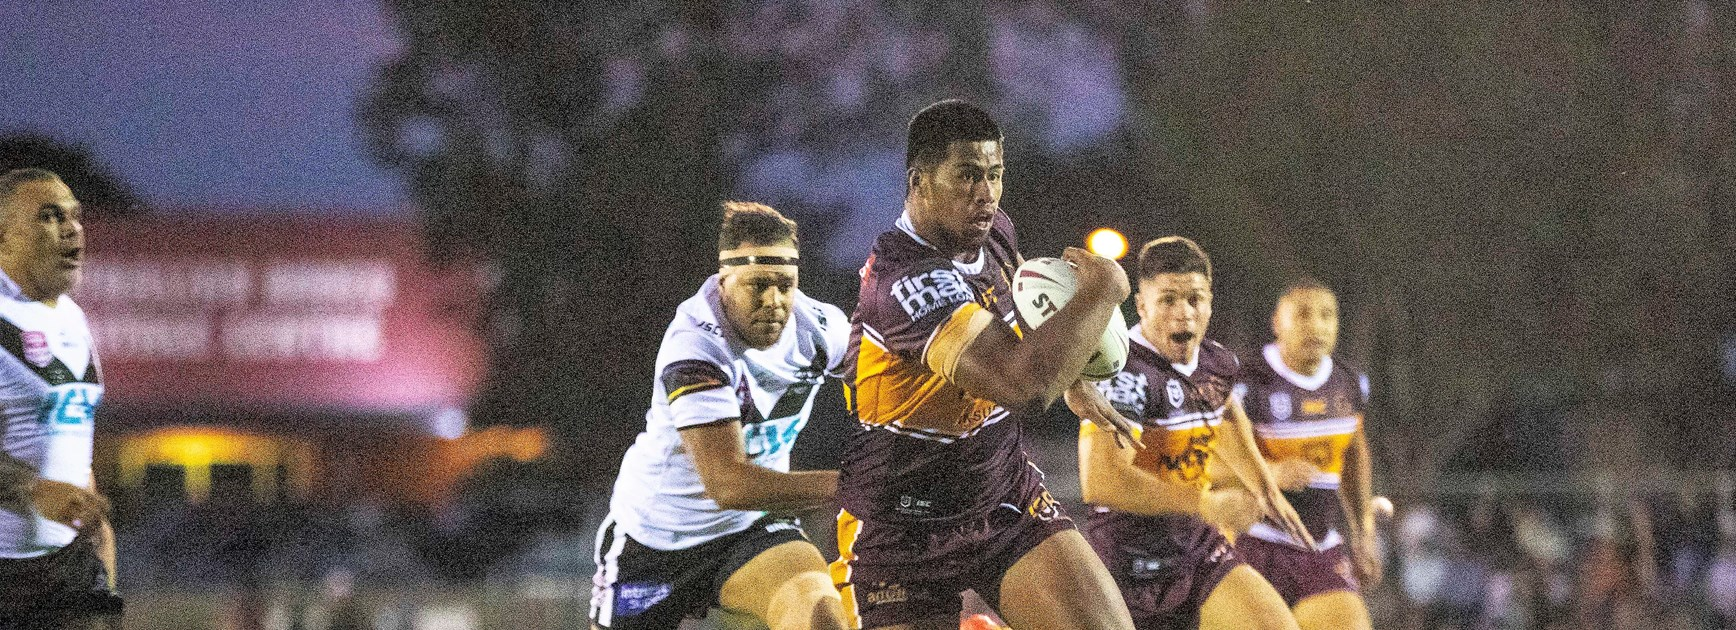 Payne Haas in action against Souths-Logan.